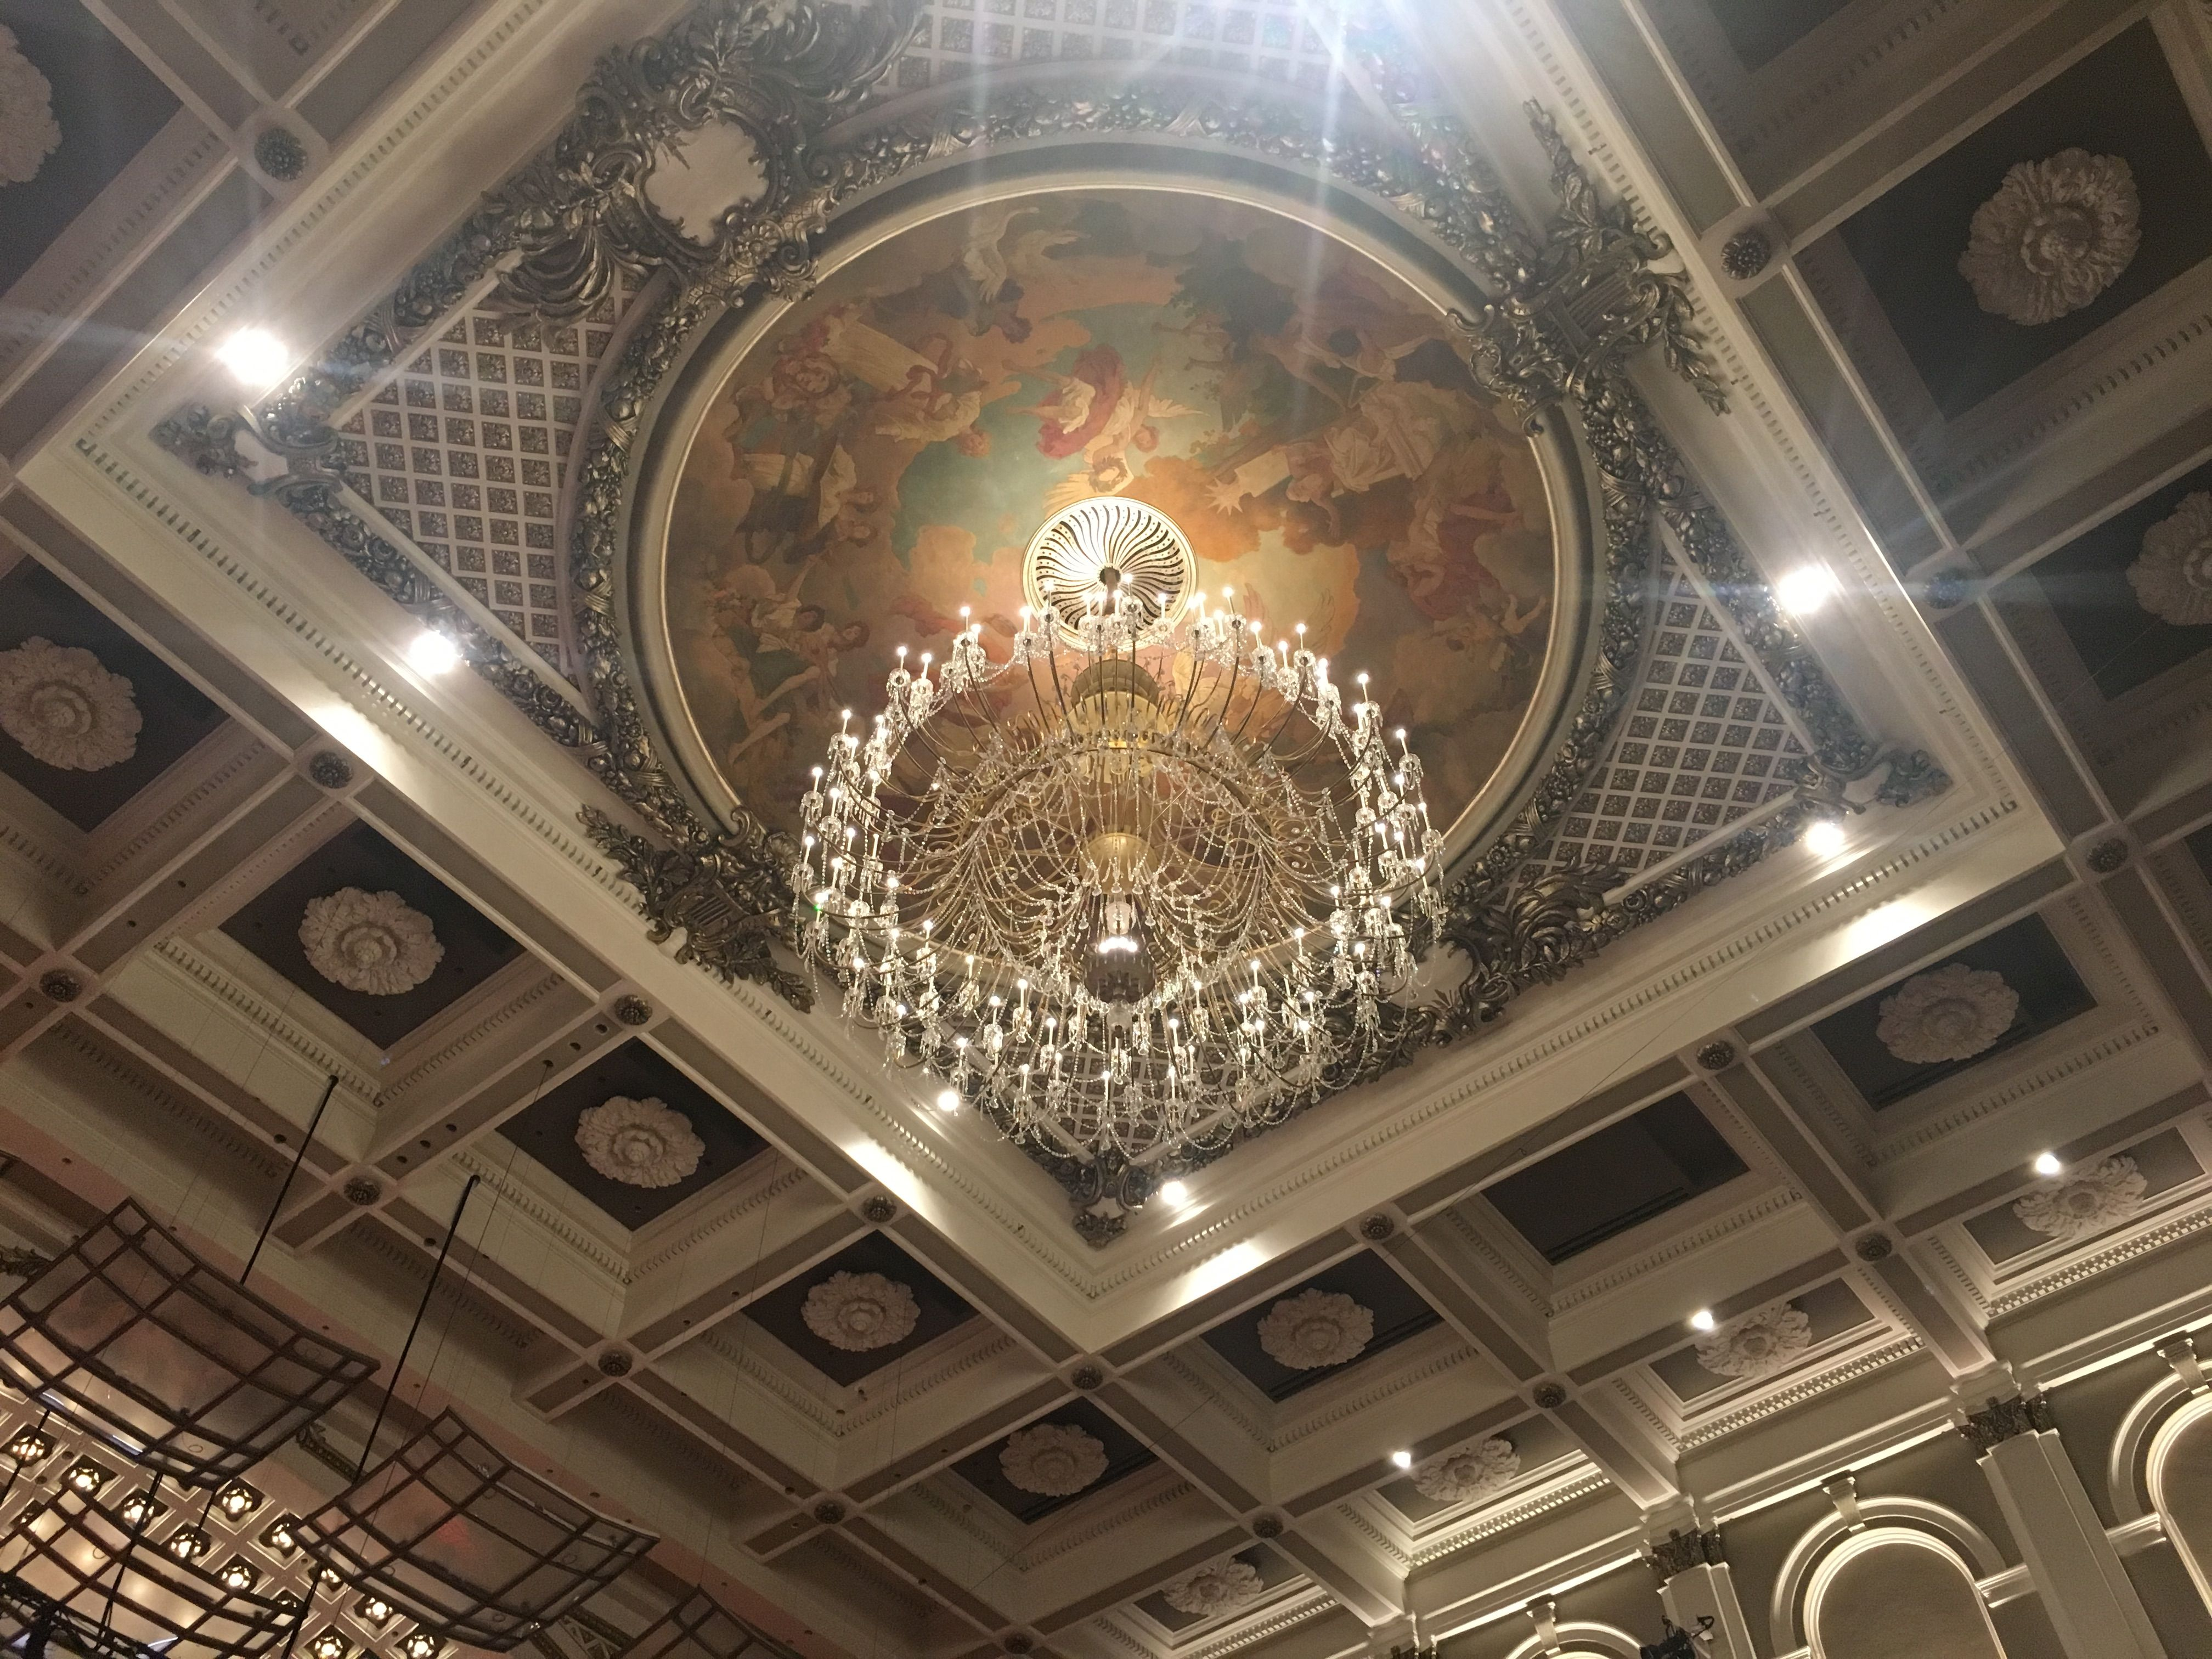 Ceiling Mural And Chandelier In